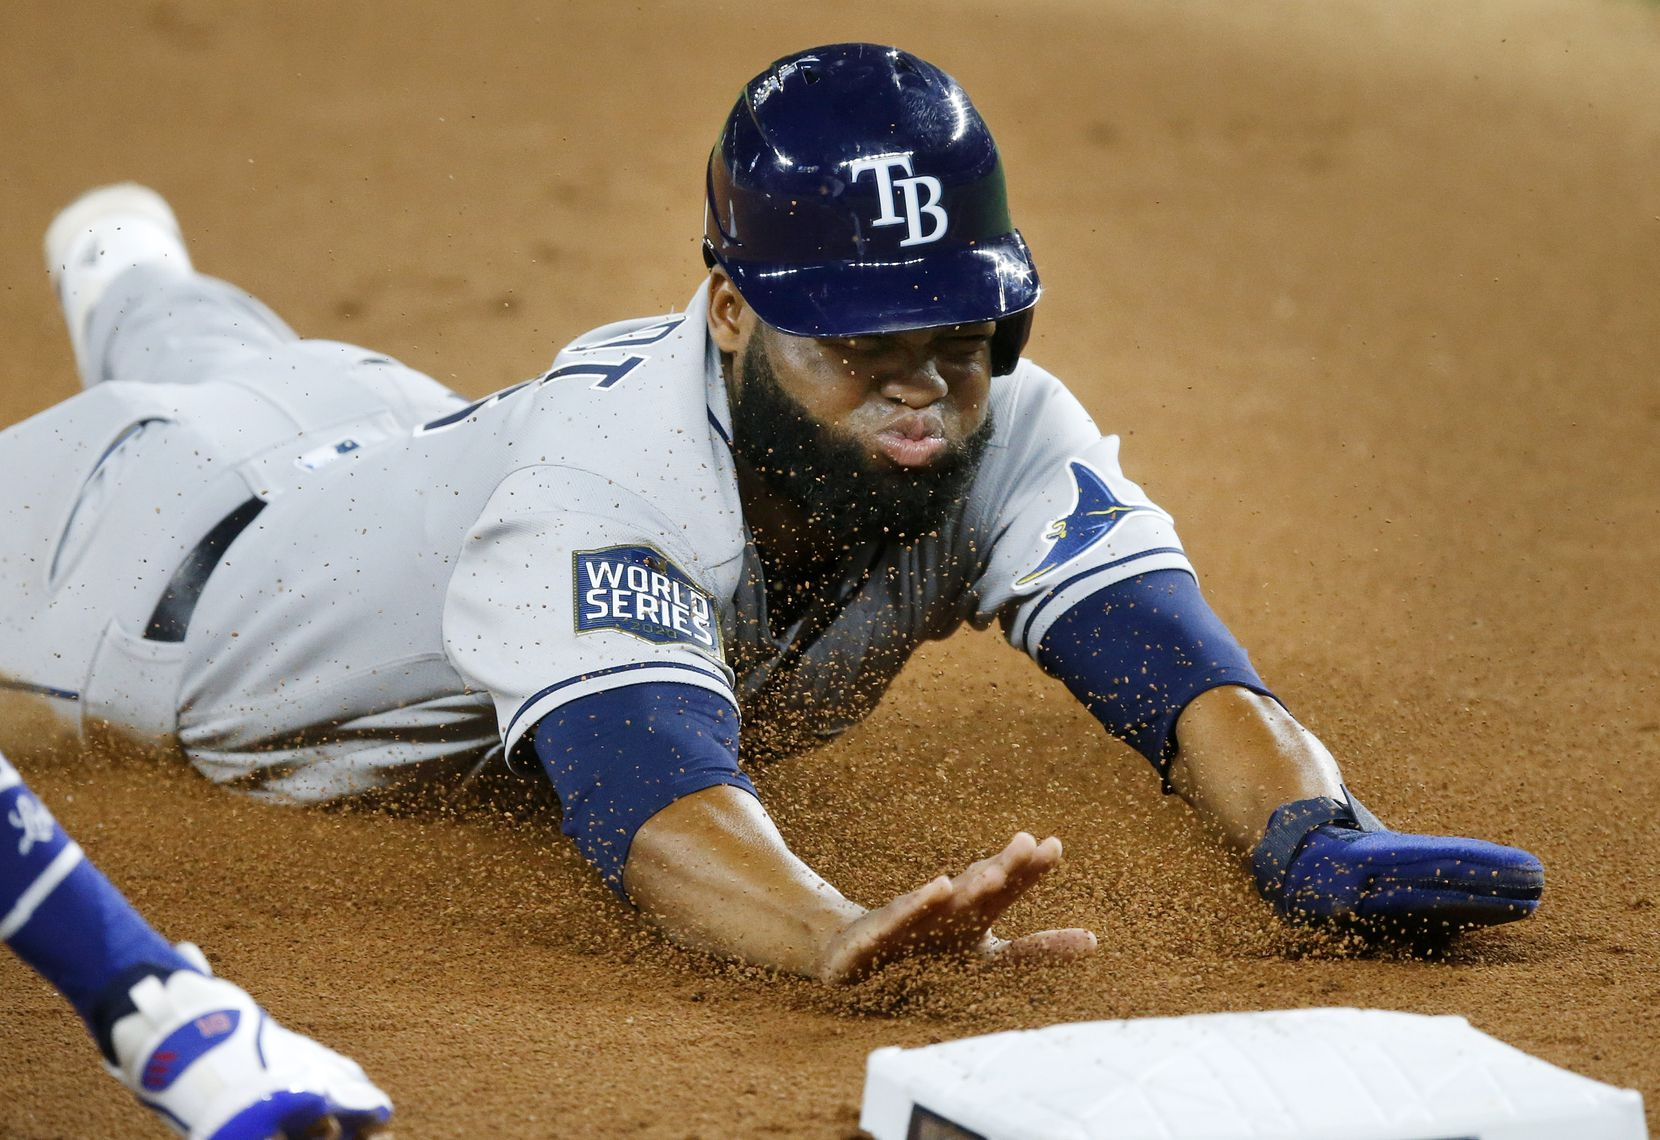 Tampa Bay Rays Manuel Margot (13) slides safely into third base on a fly ball by Joey Wendle (18) during the second inning against the Los Angeles Dodgers in Game 2 of the World Series at Globe Life Field in Arlington, Wednesday, October 21, 2020. (Tom Fox/The Dallas Morning News)